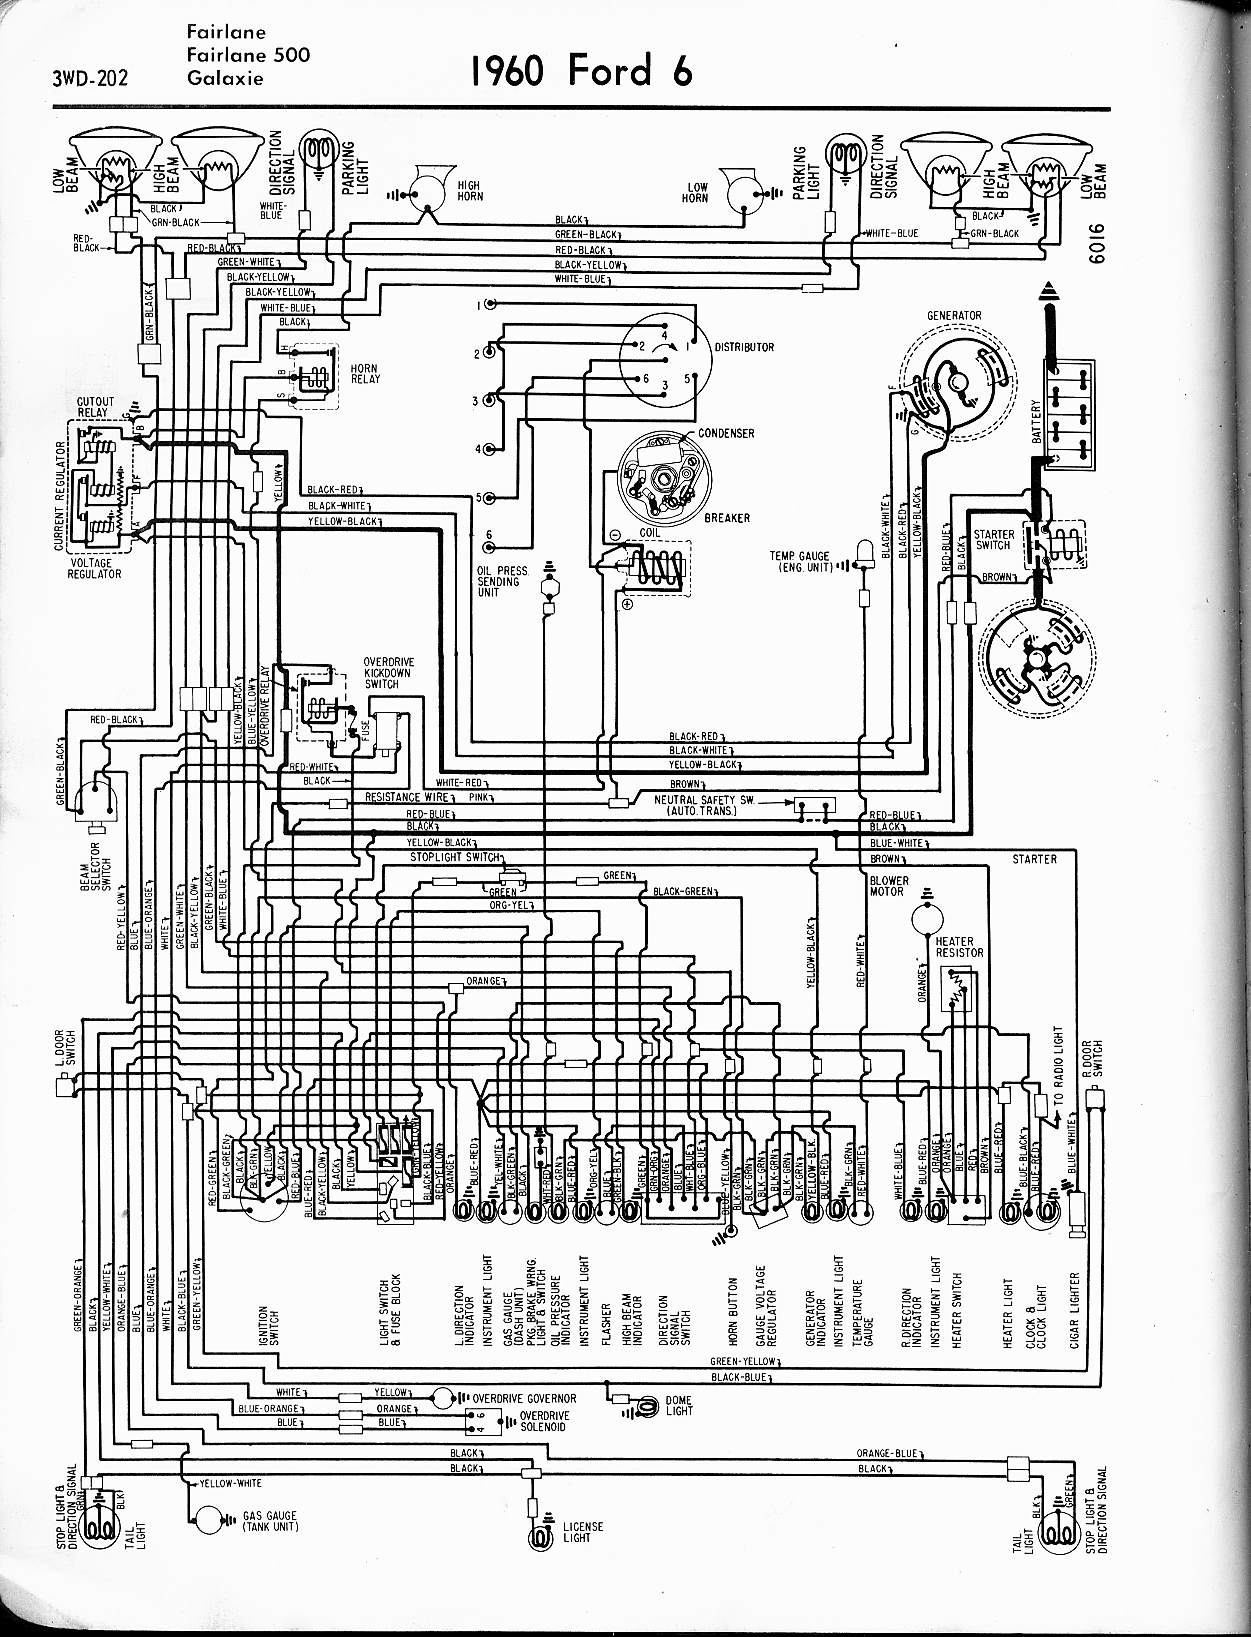 57 65 Ford Wiring Diagrams Yale Diagram Fork Lift 1960 6 Cyl Fairlane 500 Galaxie